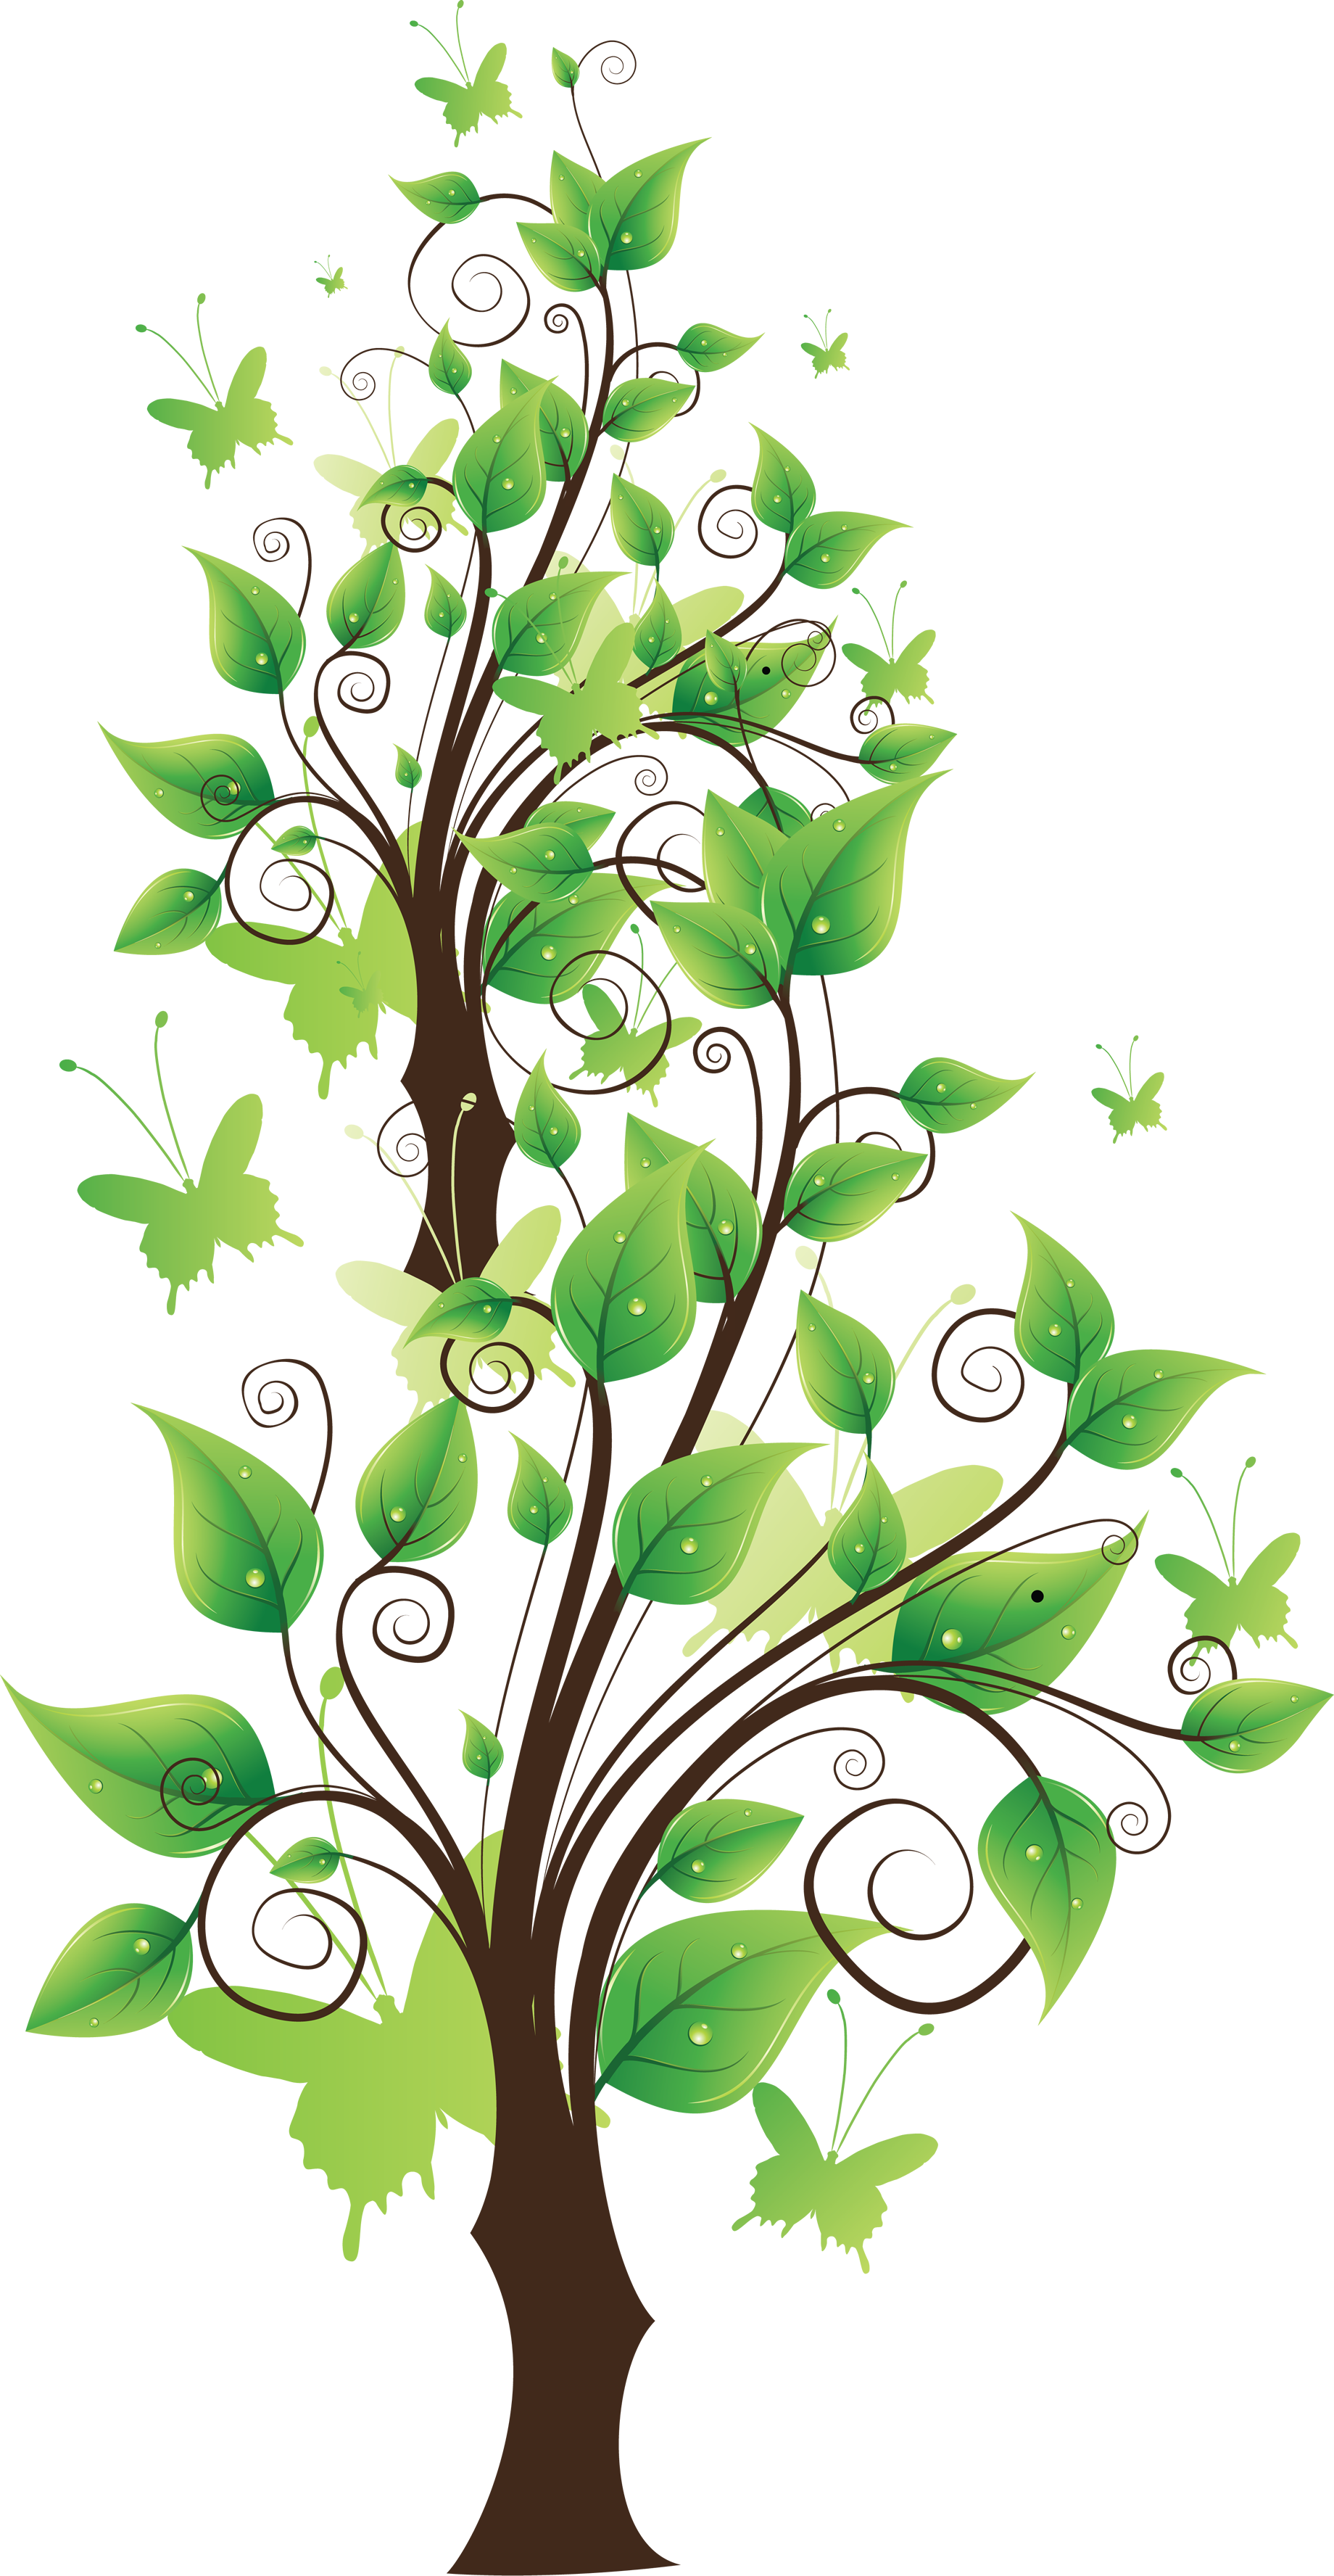 tree clipart cartoon environment background cliparts supporting downloads nature file